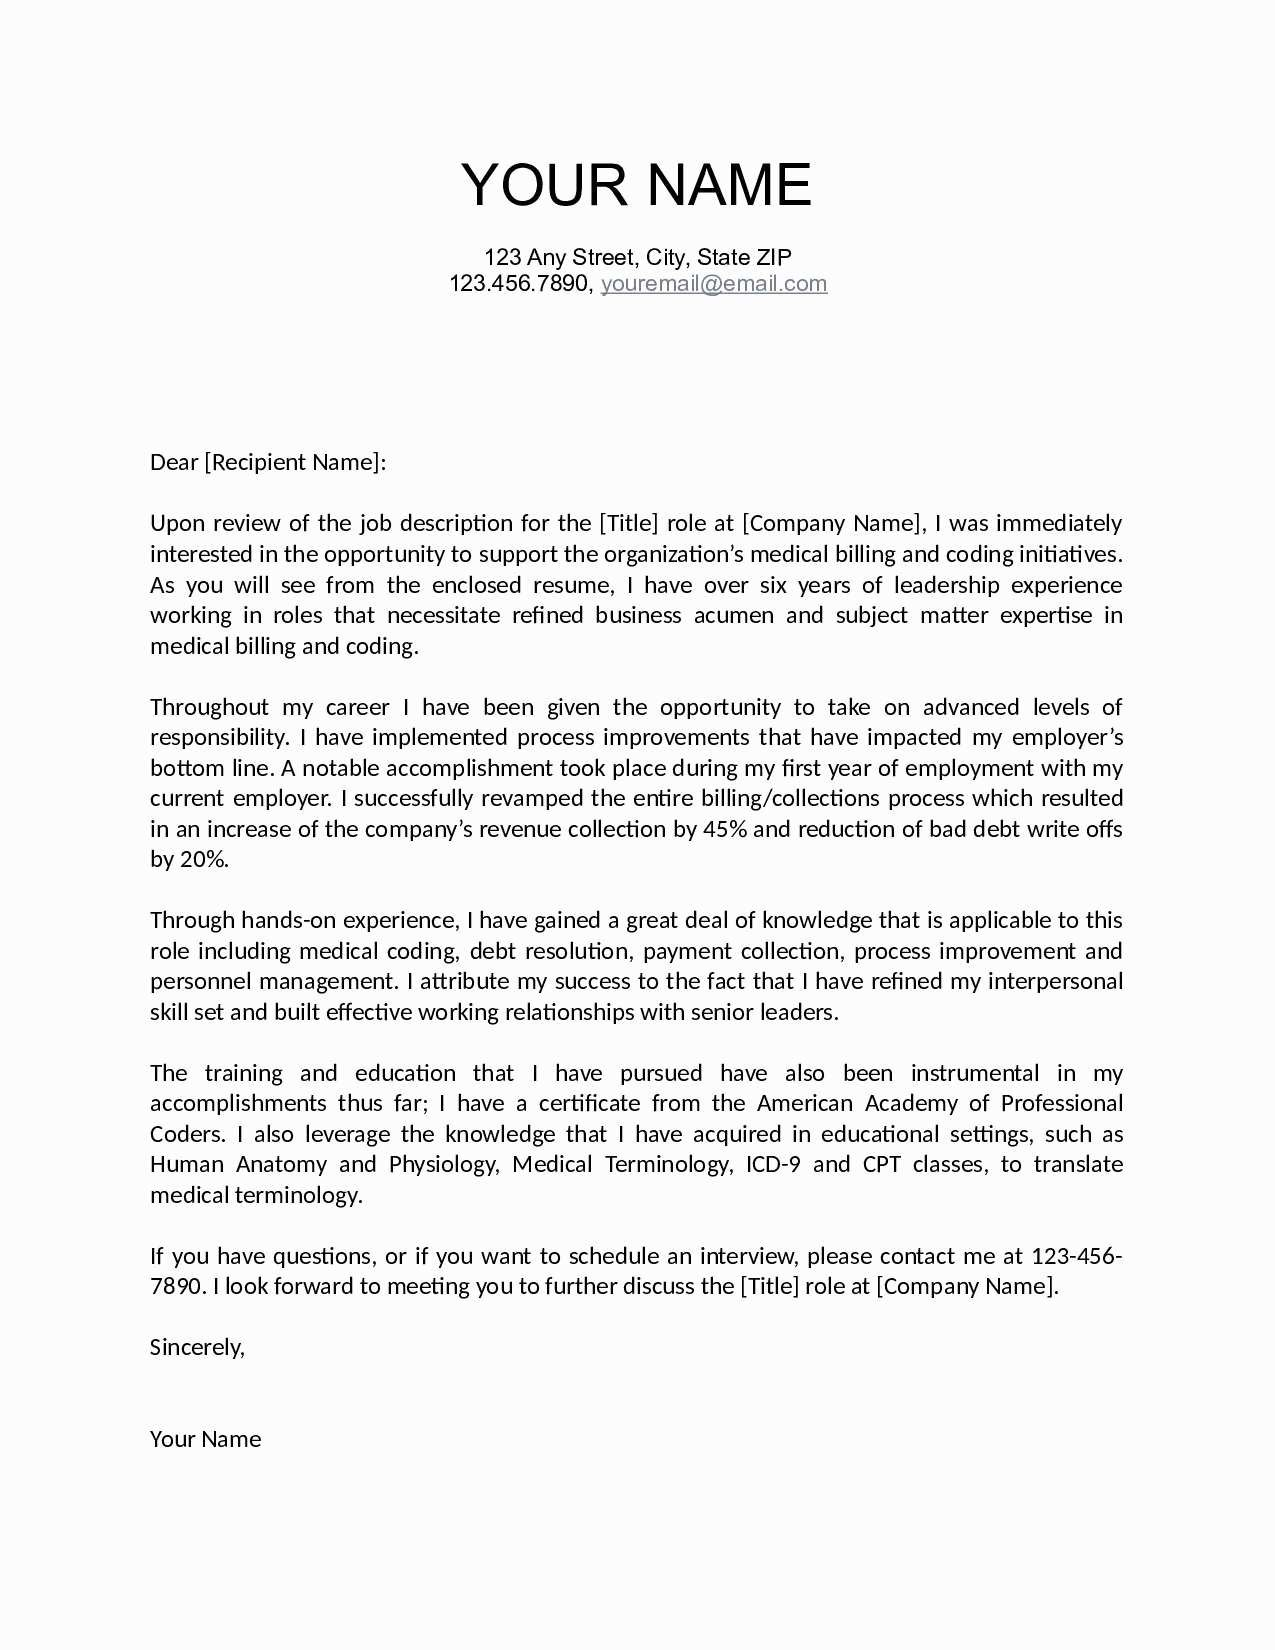 Proof Of Employment Letter Template - Best Sample Cover Letter for Job In Healthcare